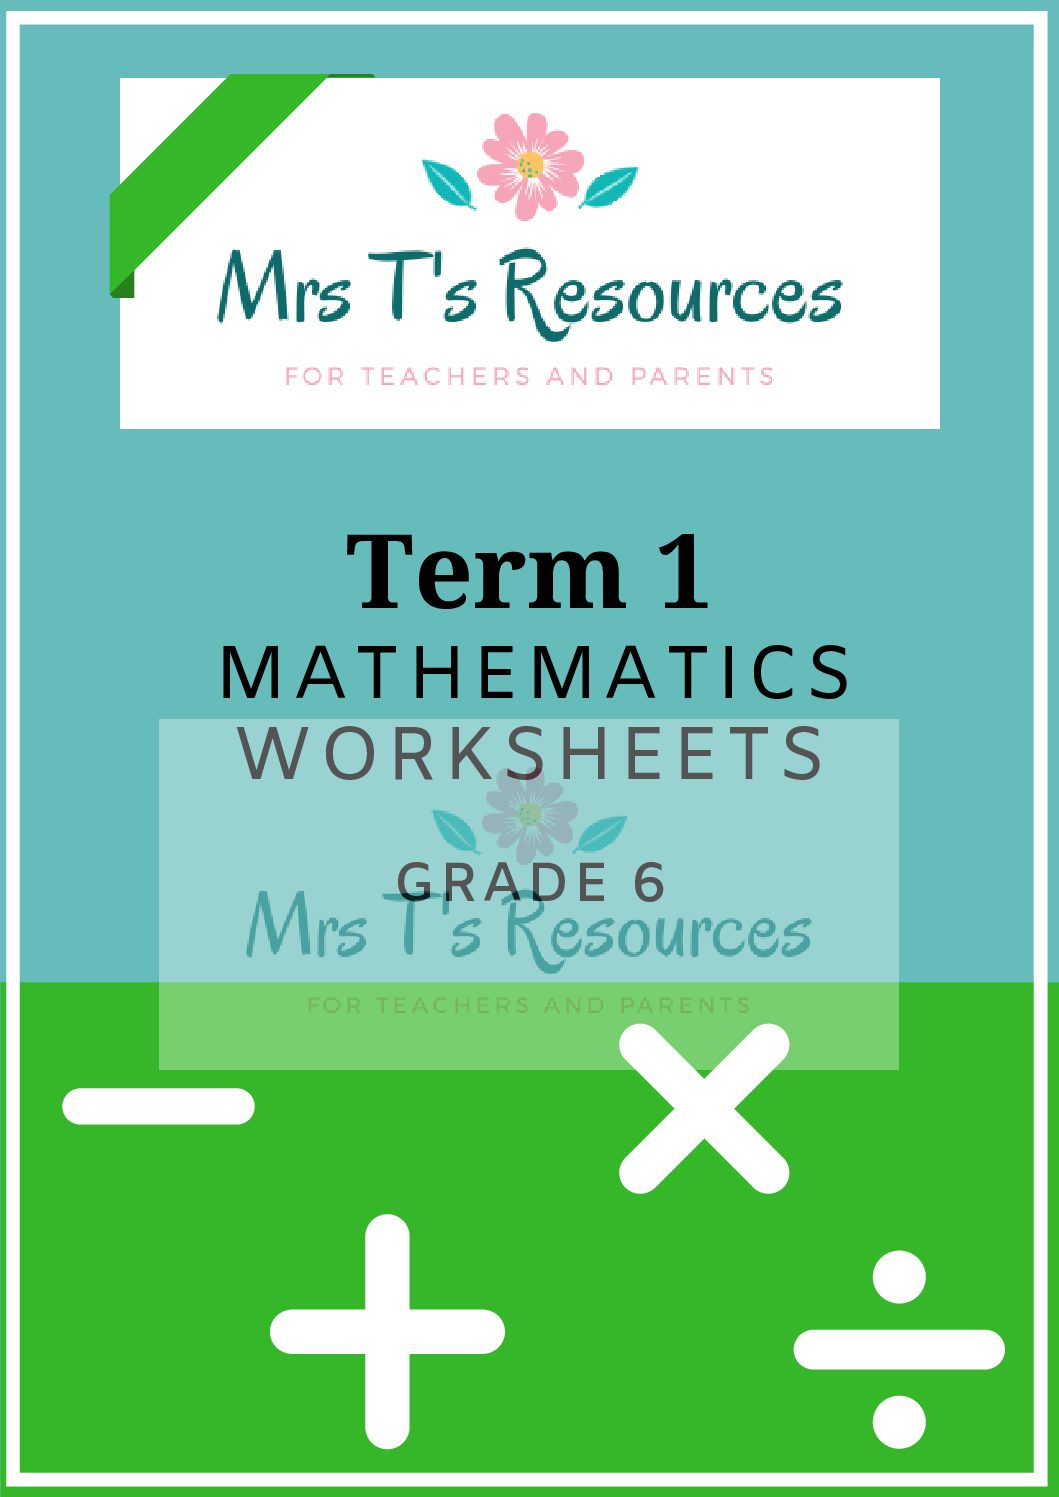 Grade 6 Mathematics Worksheets Term 1